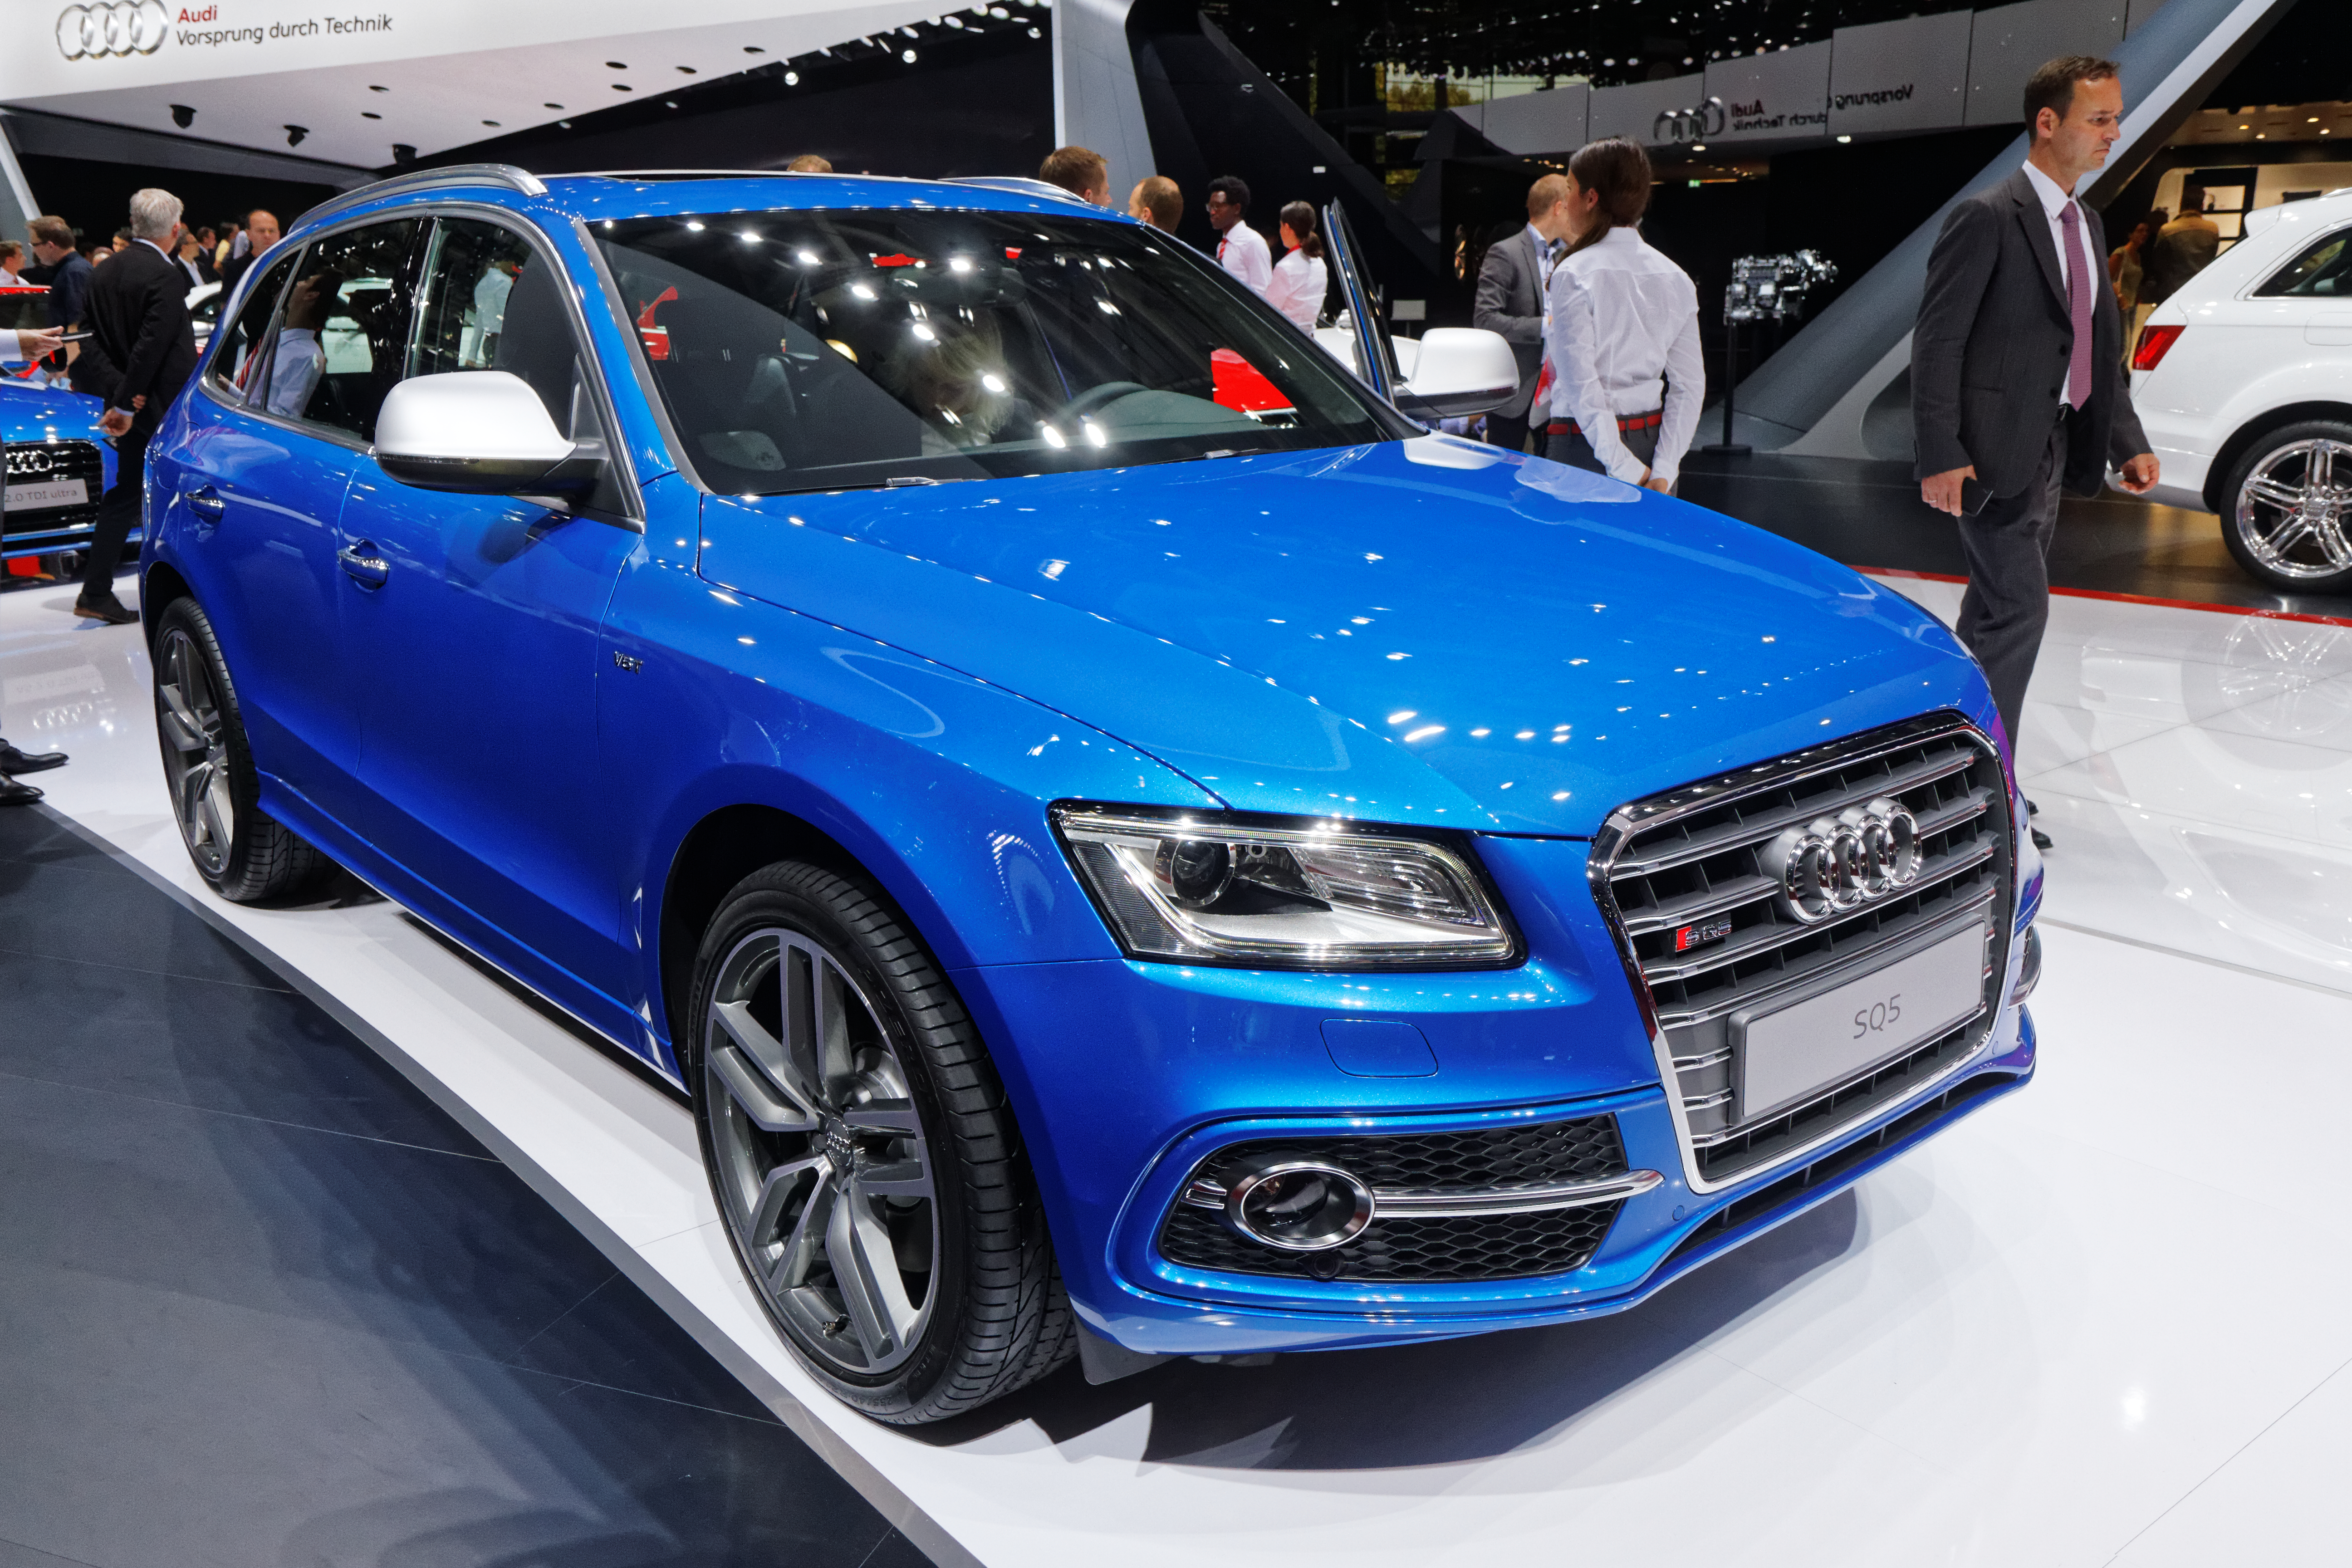 offer discounts special for shoe super cheap Audi SQ5 - Wikiwand